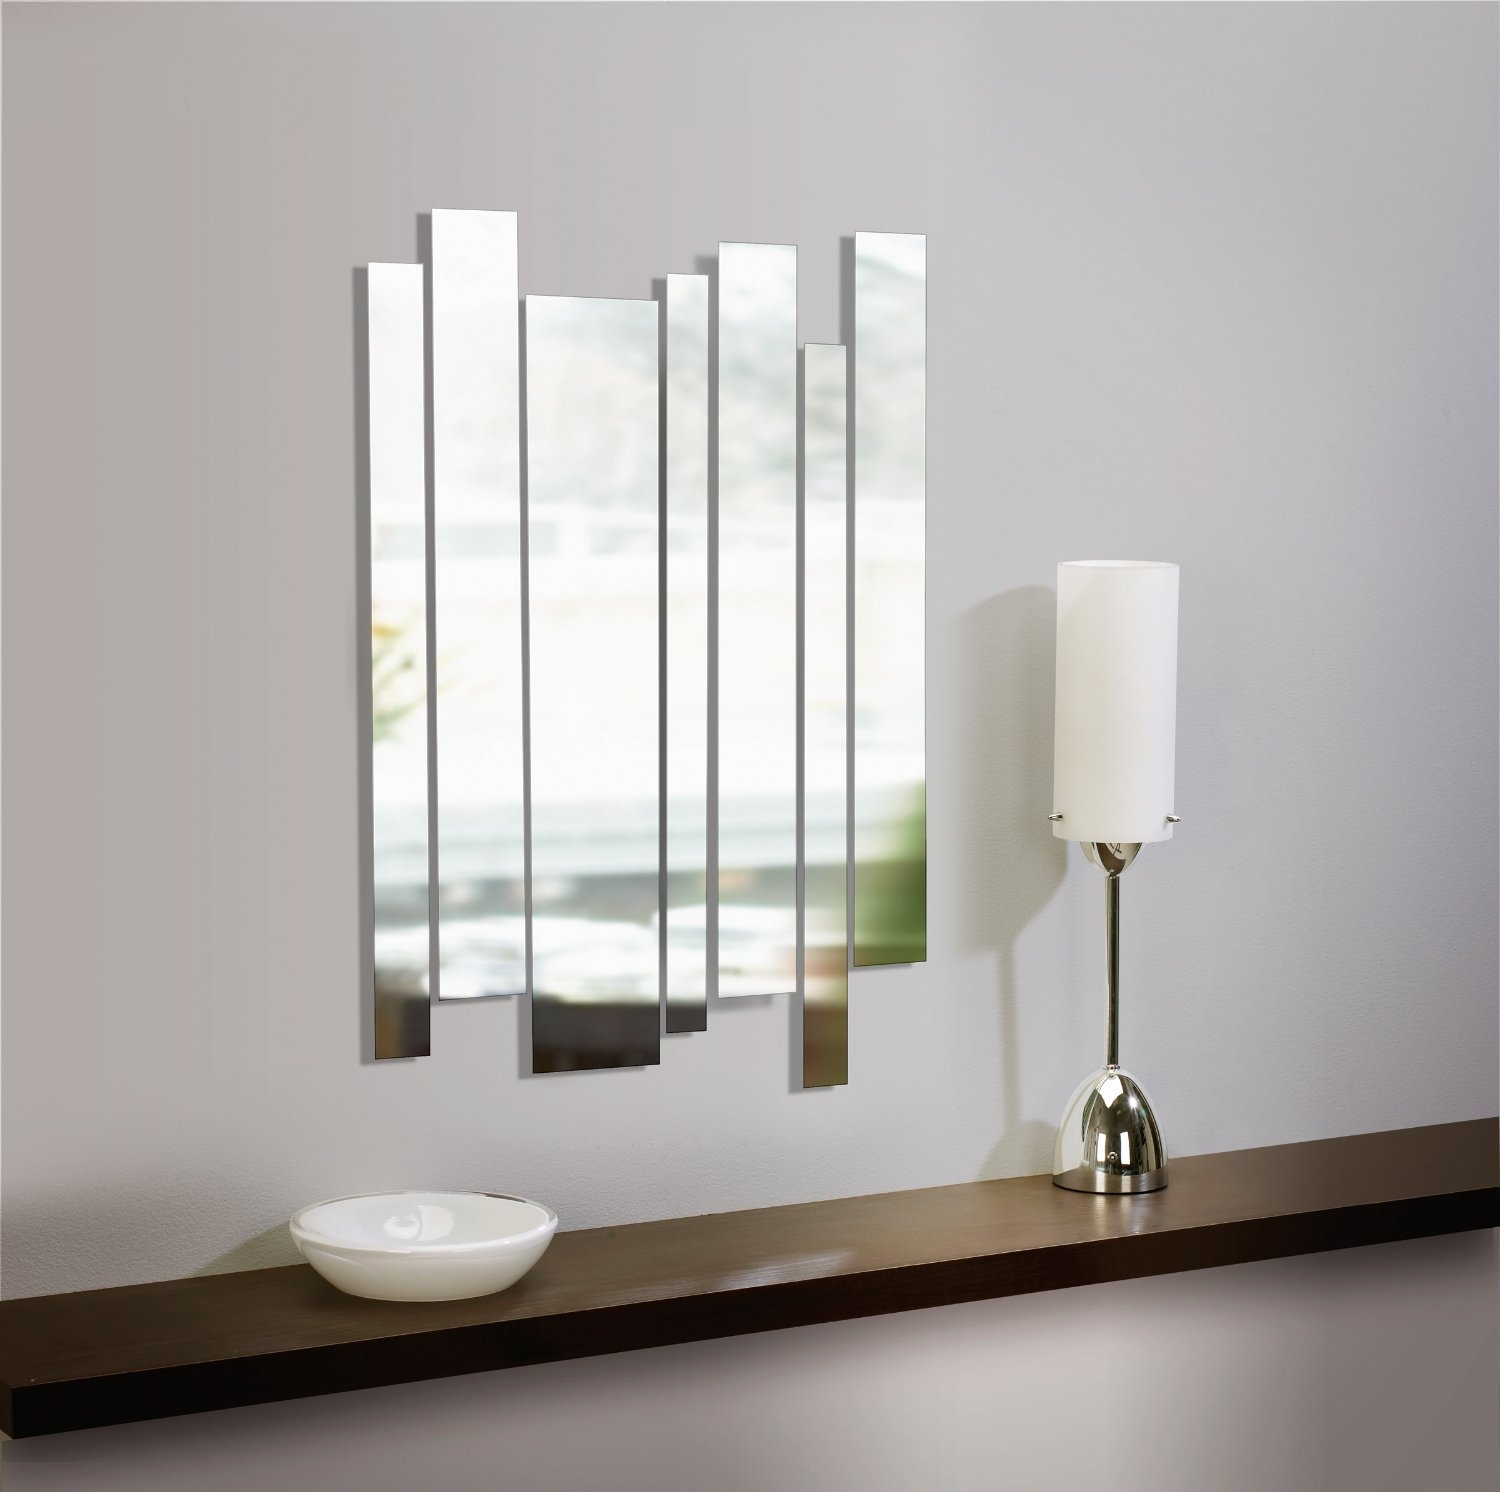 3 Panel Wall Mirror